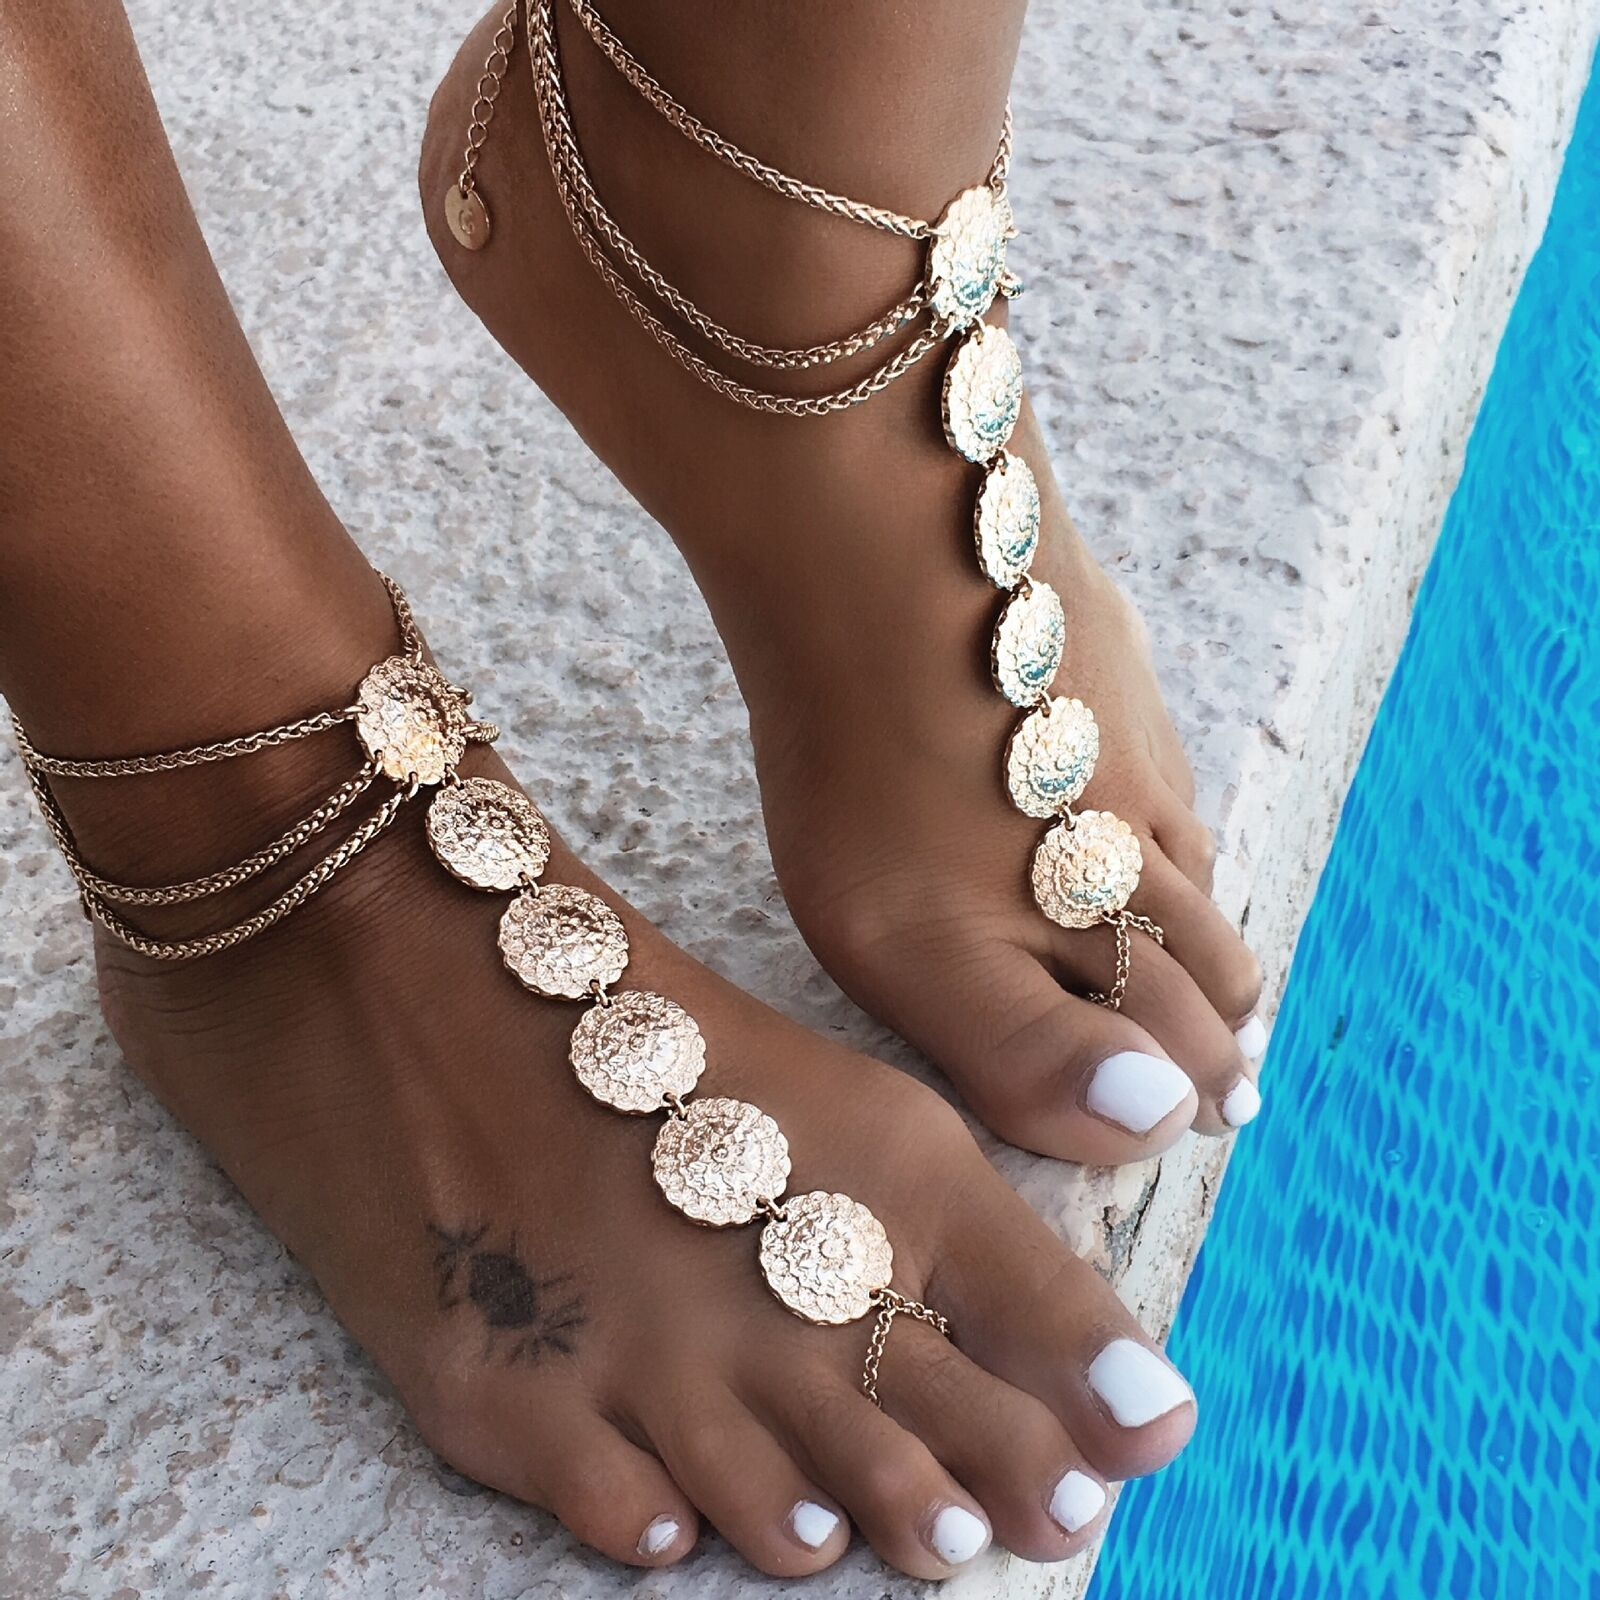 Coin Barefoot Sandal Anklet Foot Chain Toe Ring Beach Ankle